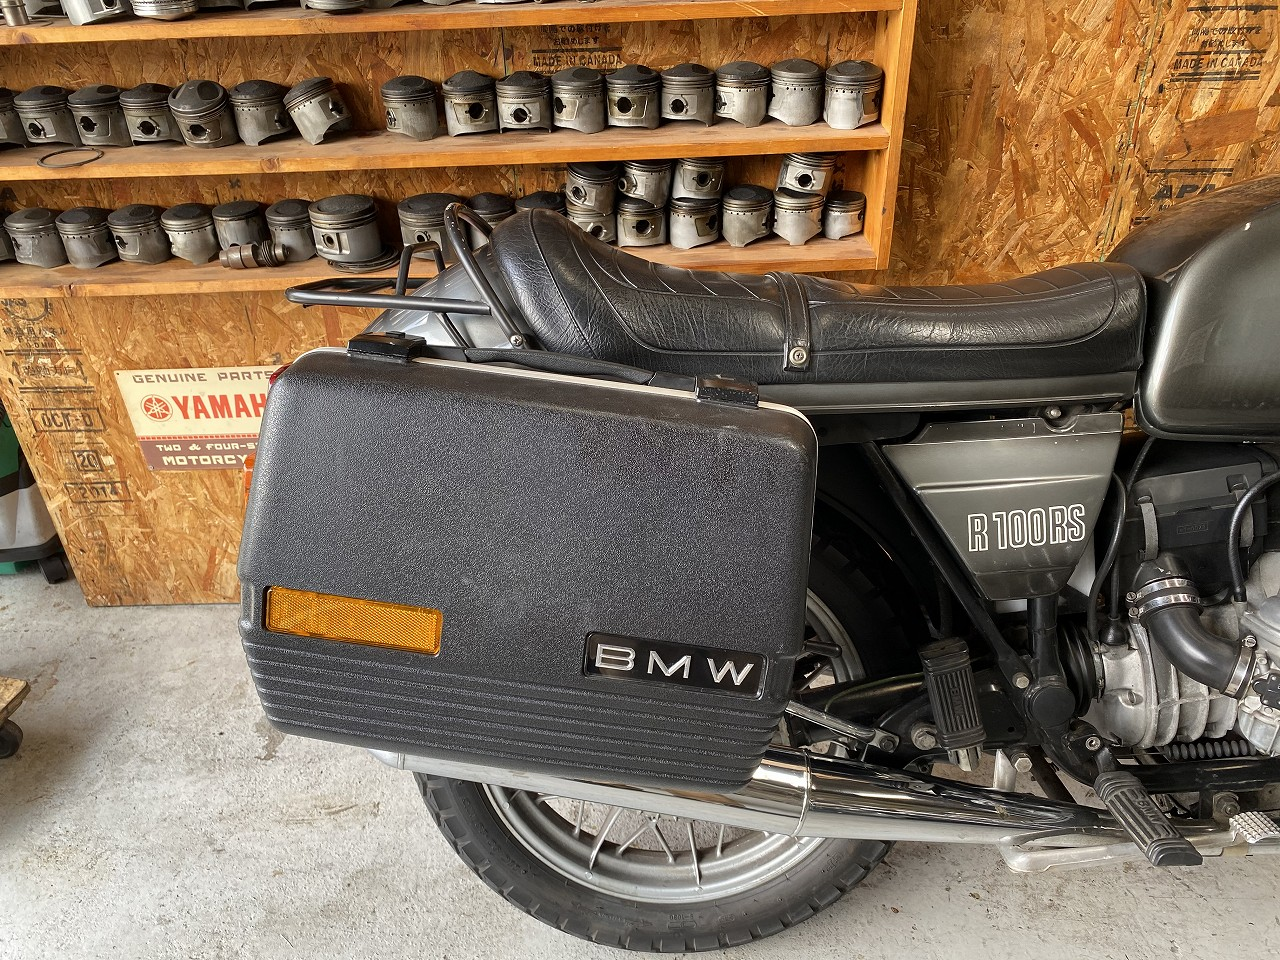 R100RS-33